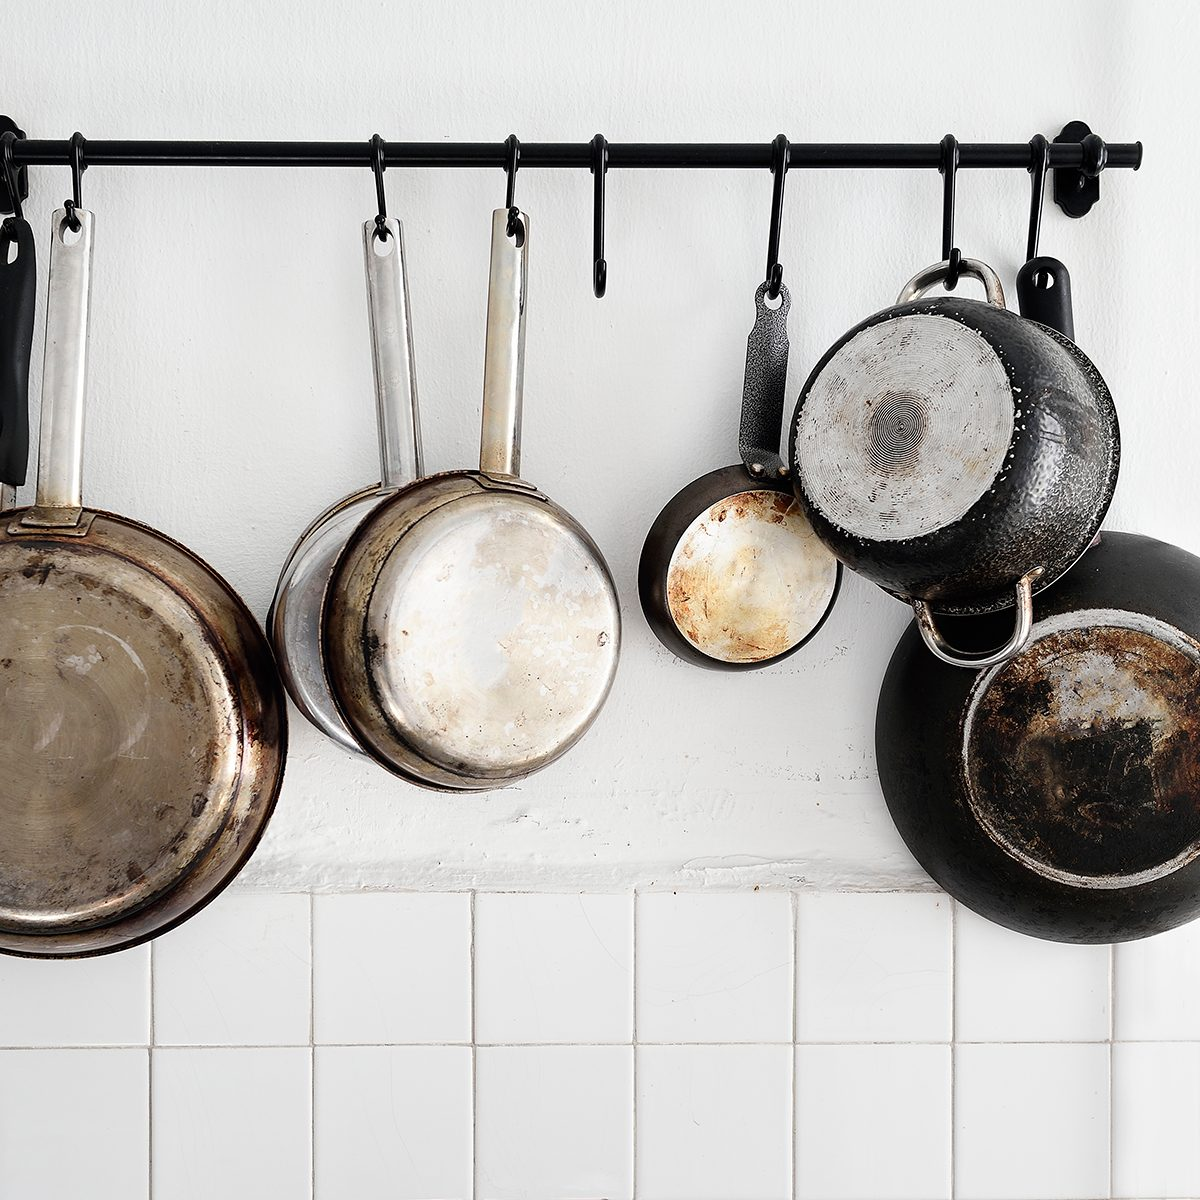 Pots and pans hanging on a kitchen wall